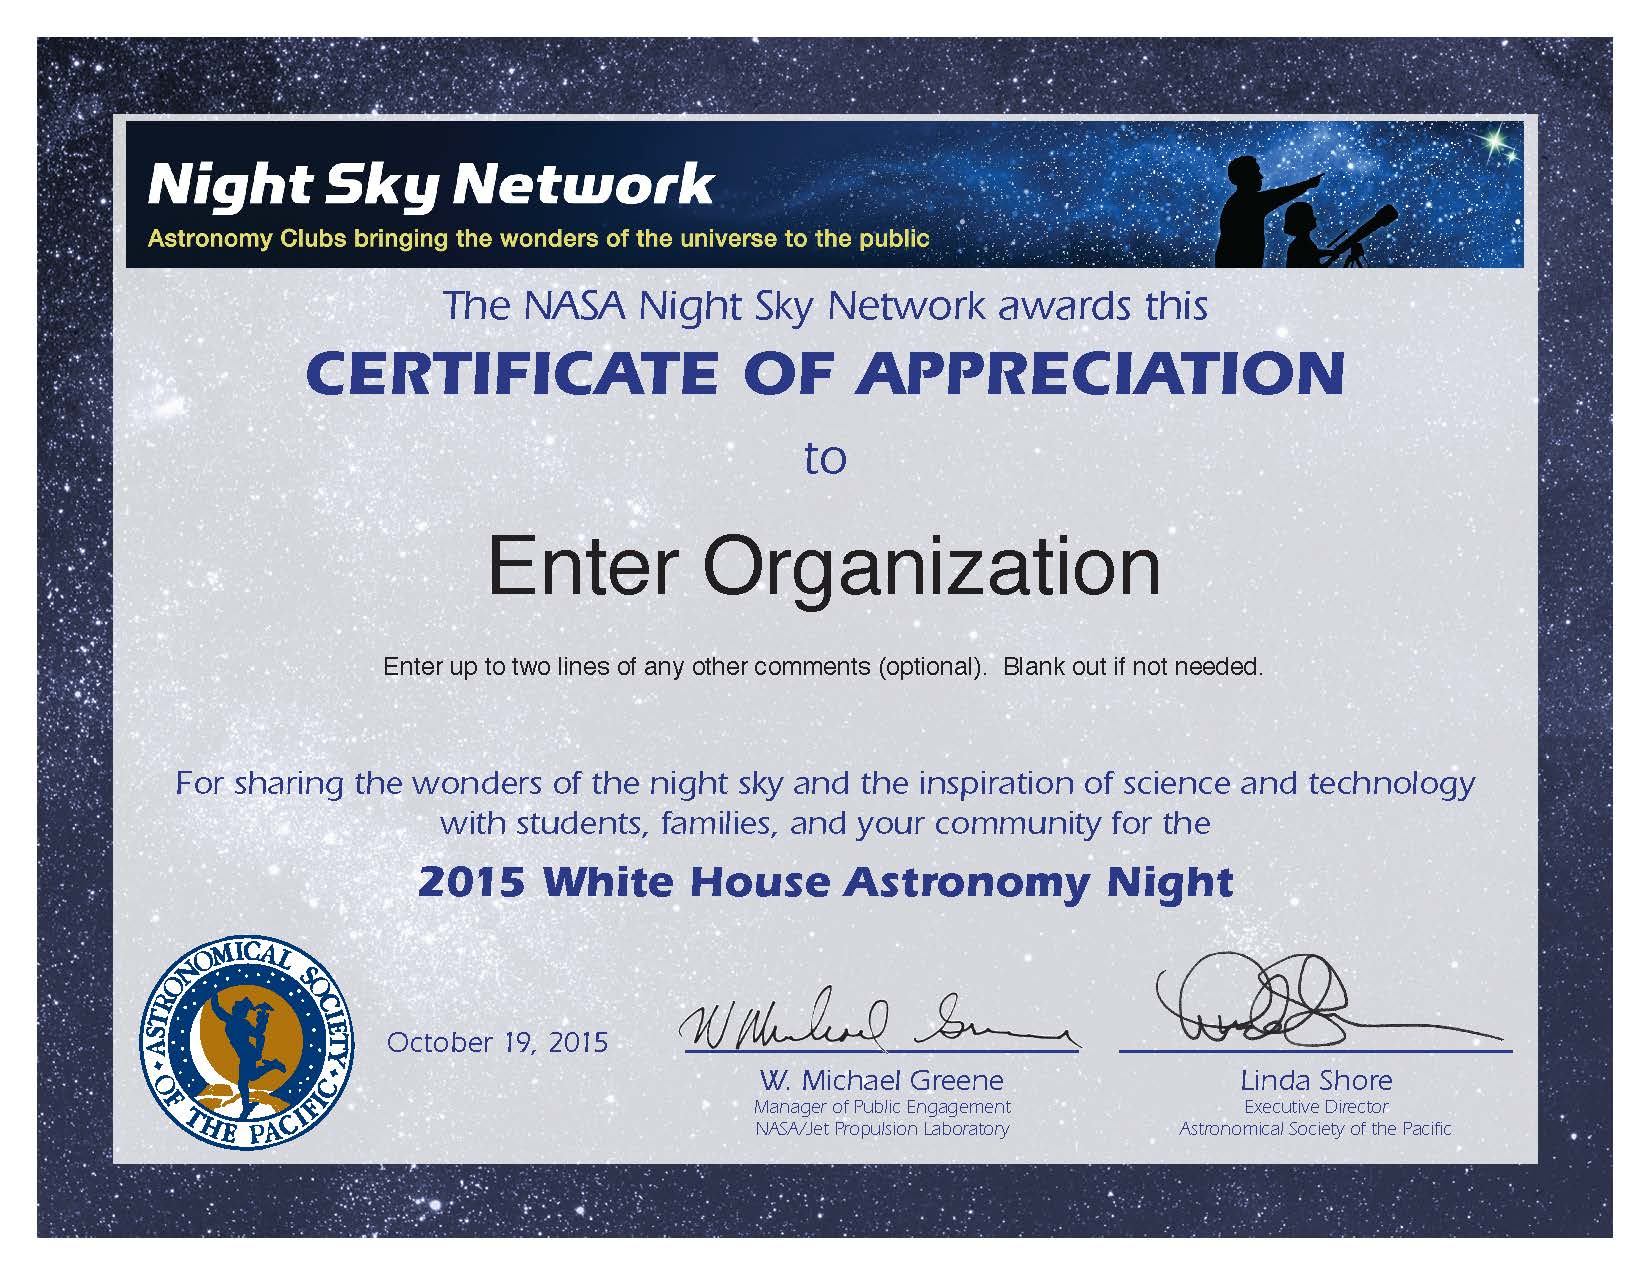 2015 White House Astronomy Night Certificate